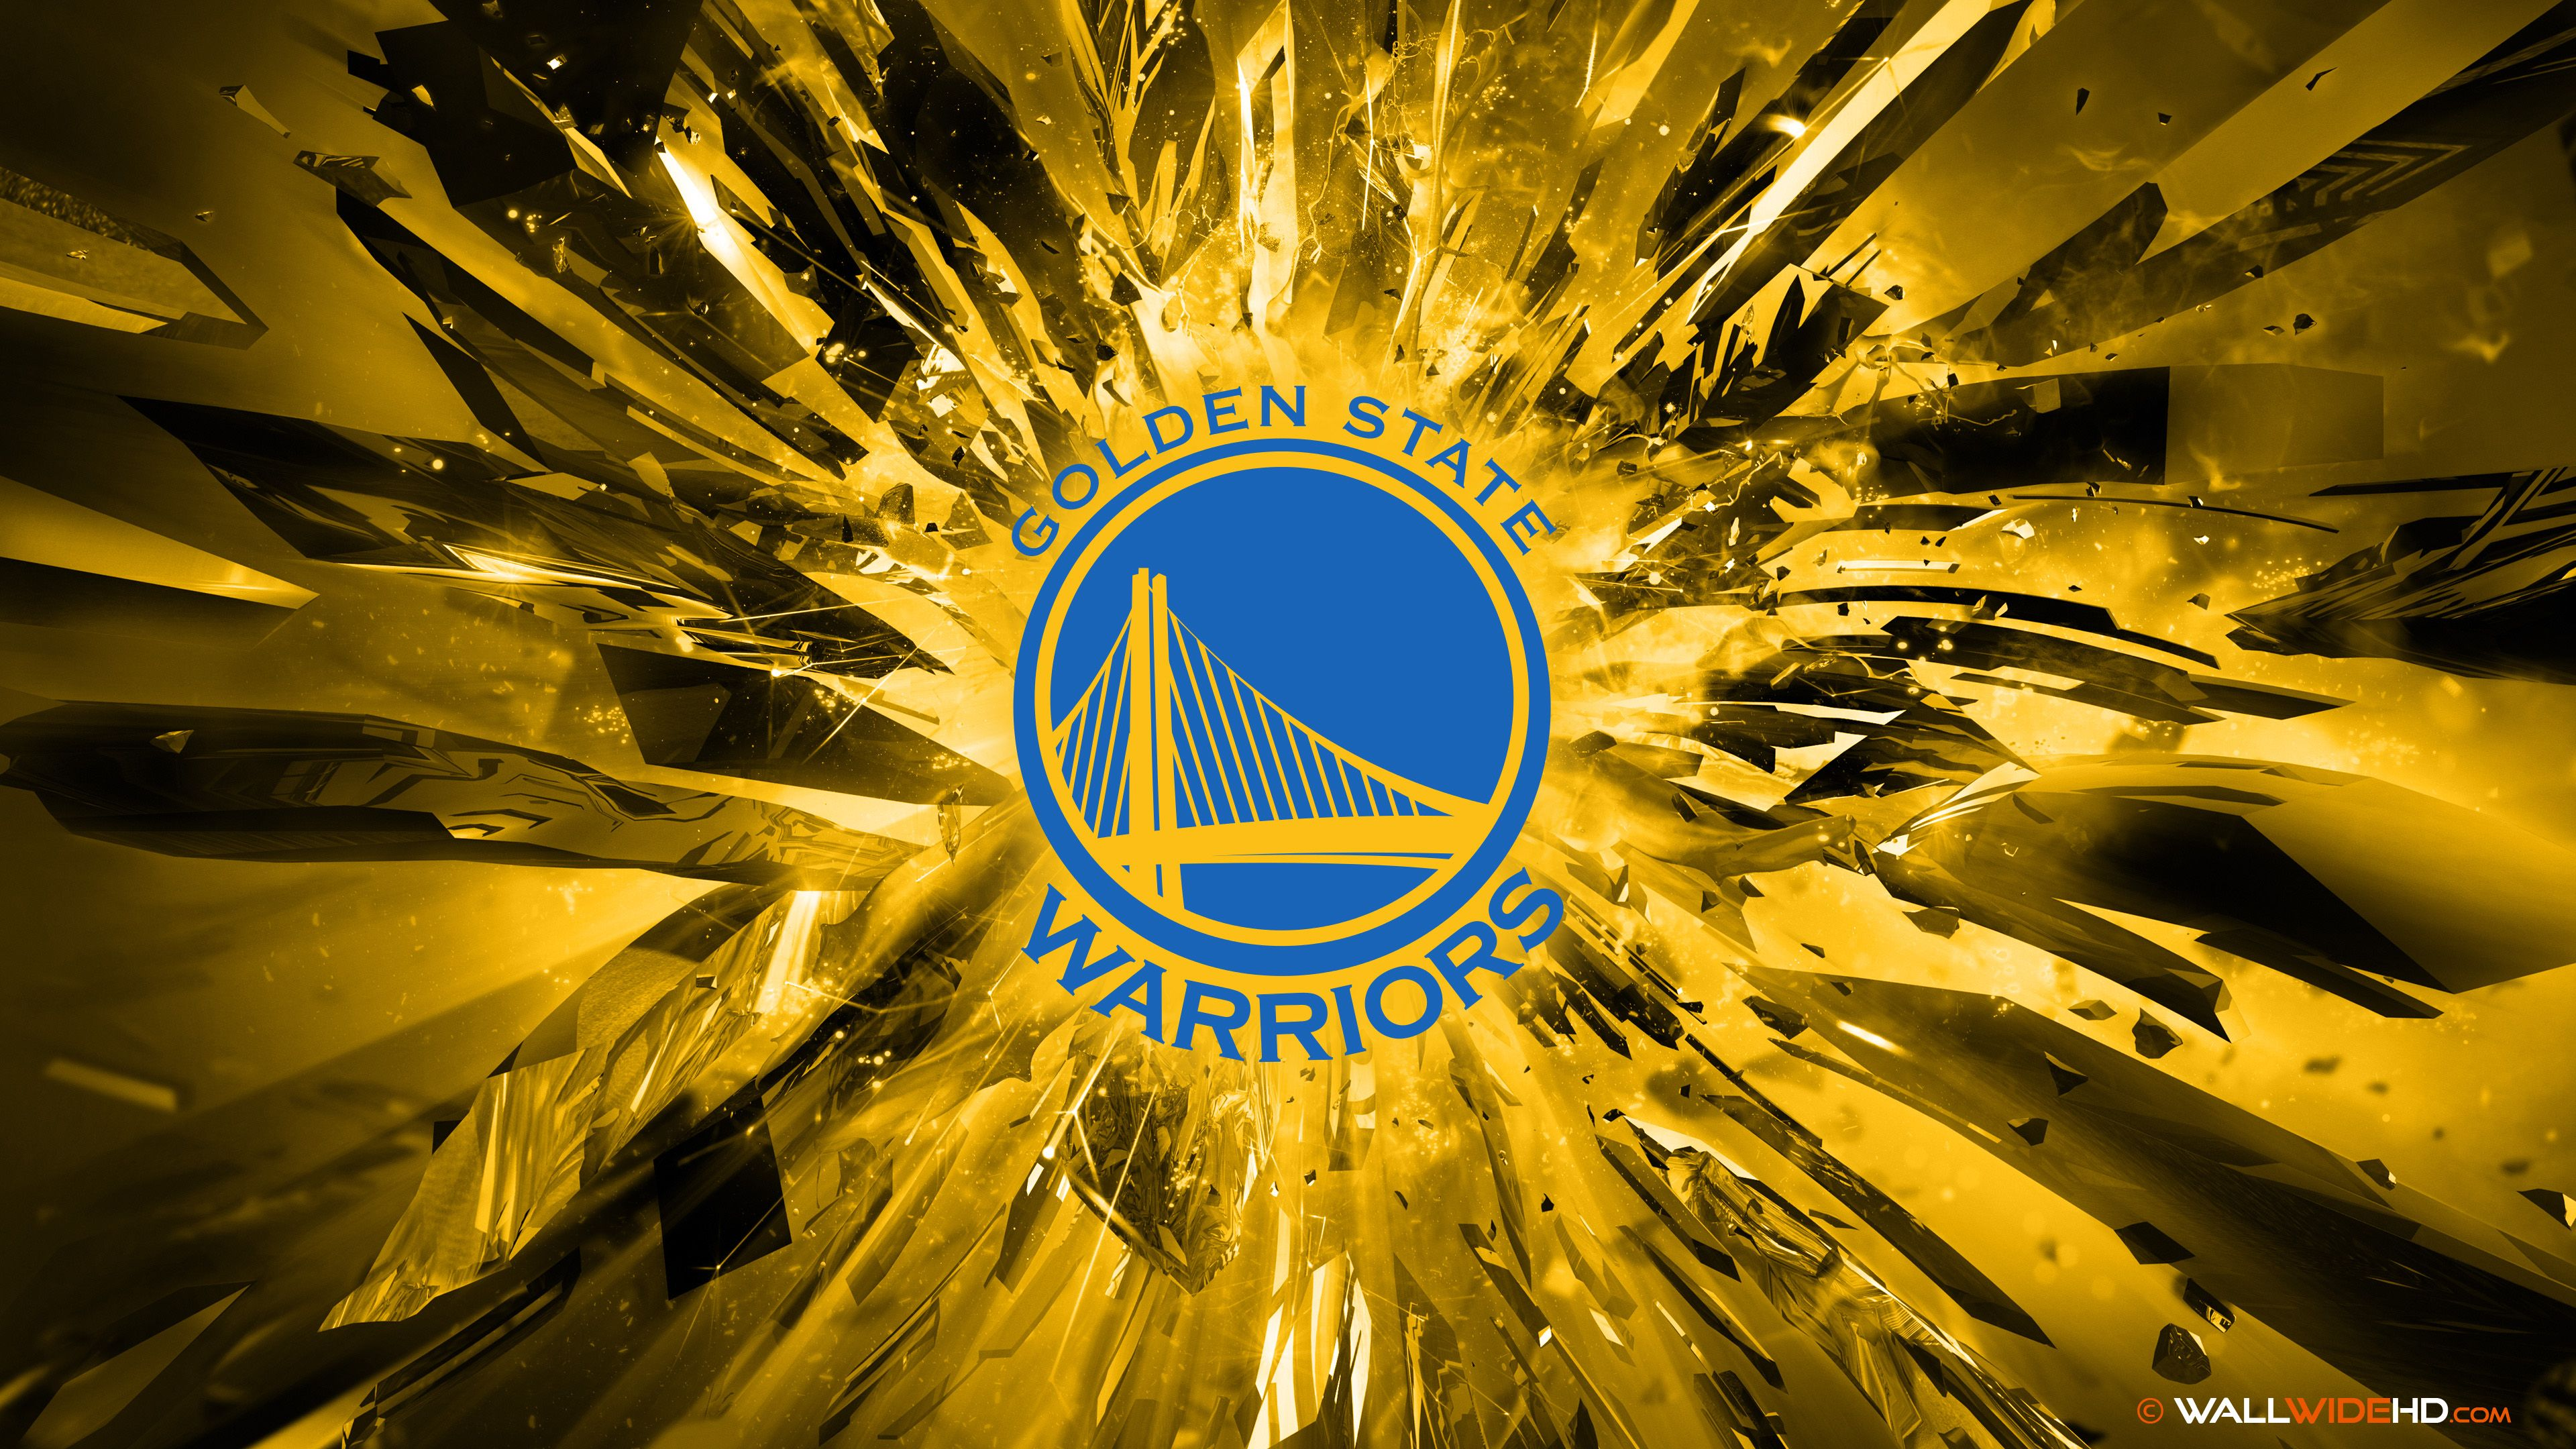 Golden State Warriors Wallpapers Basketball Wallpapers at | HD ...